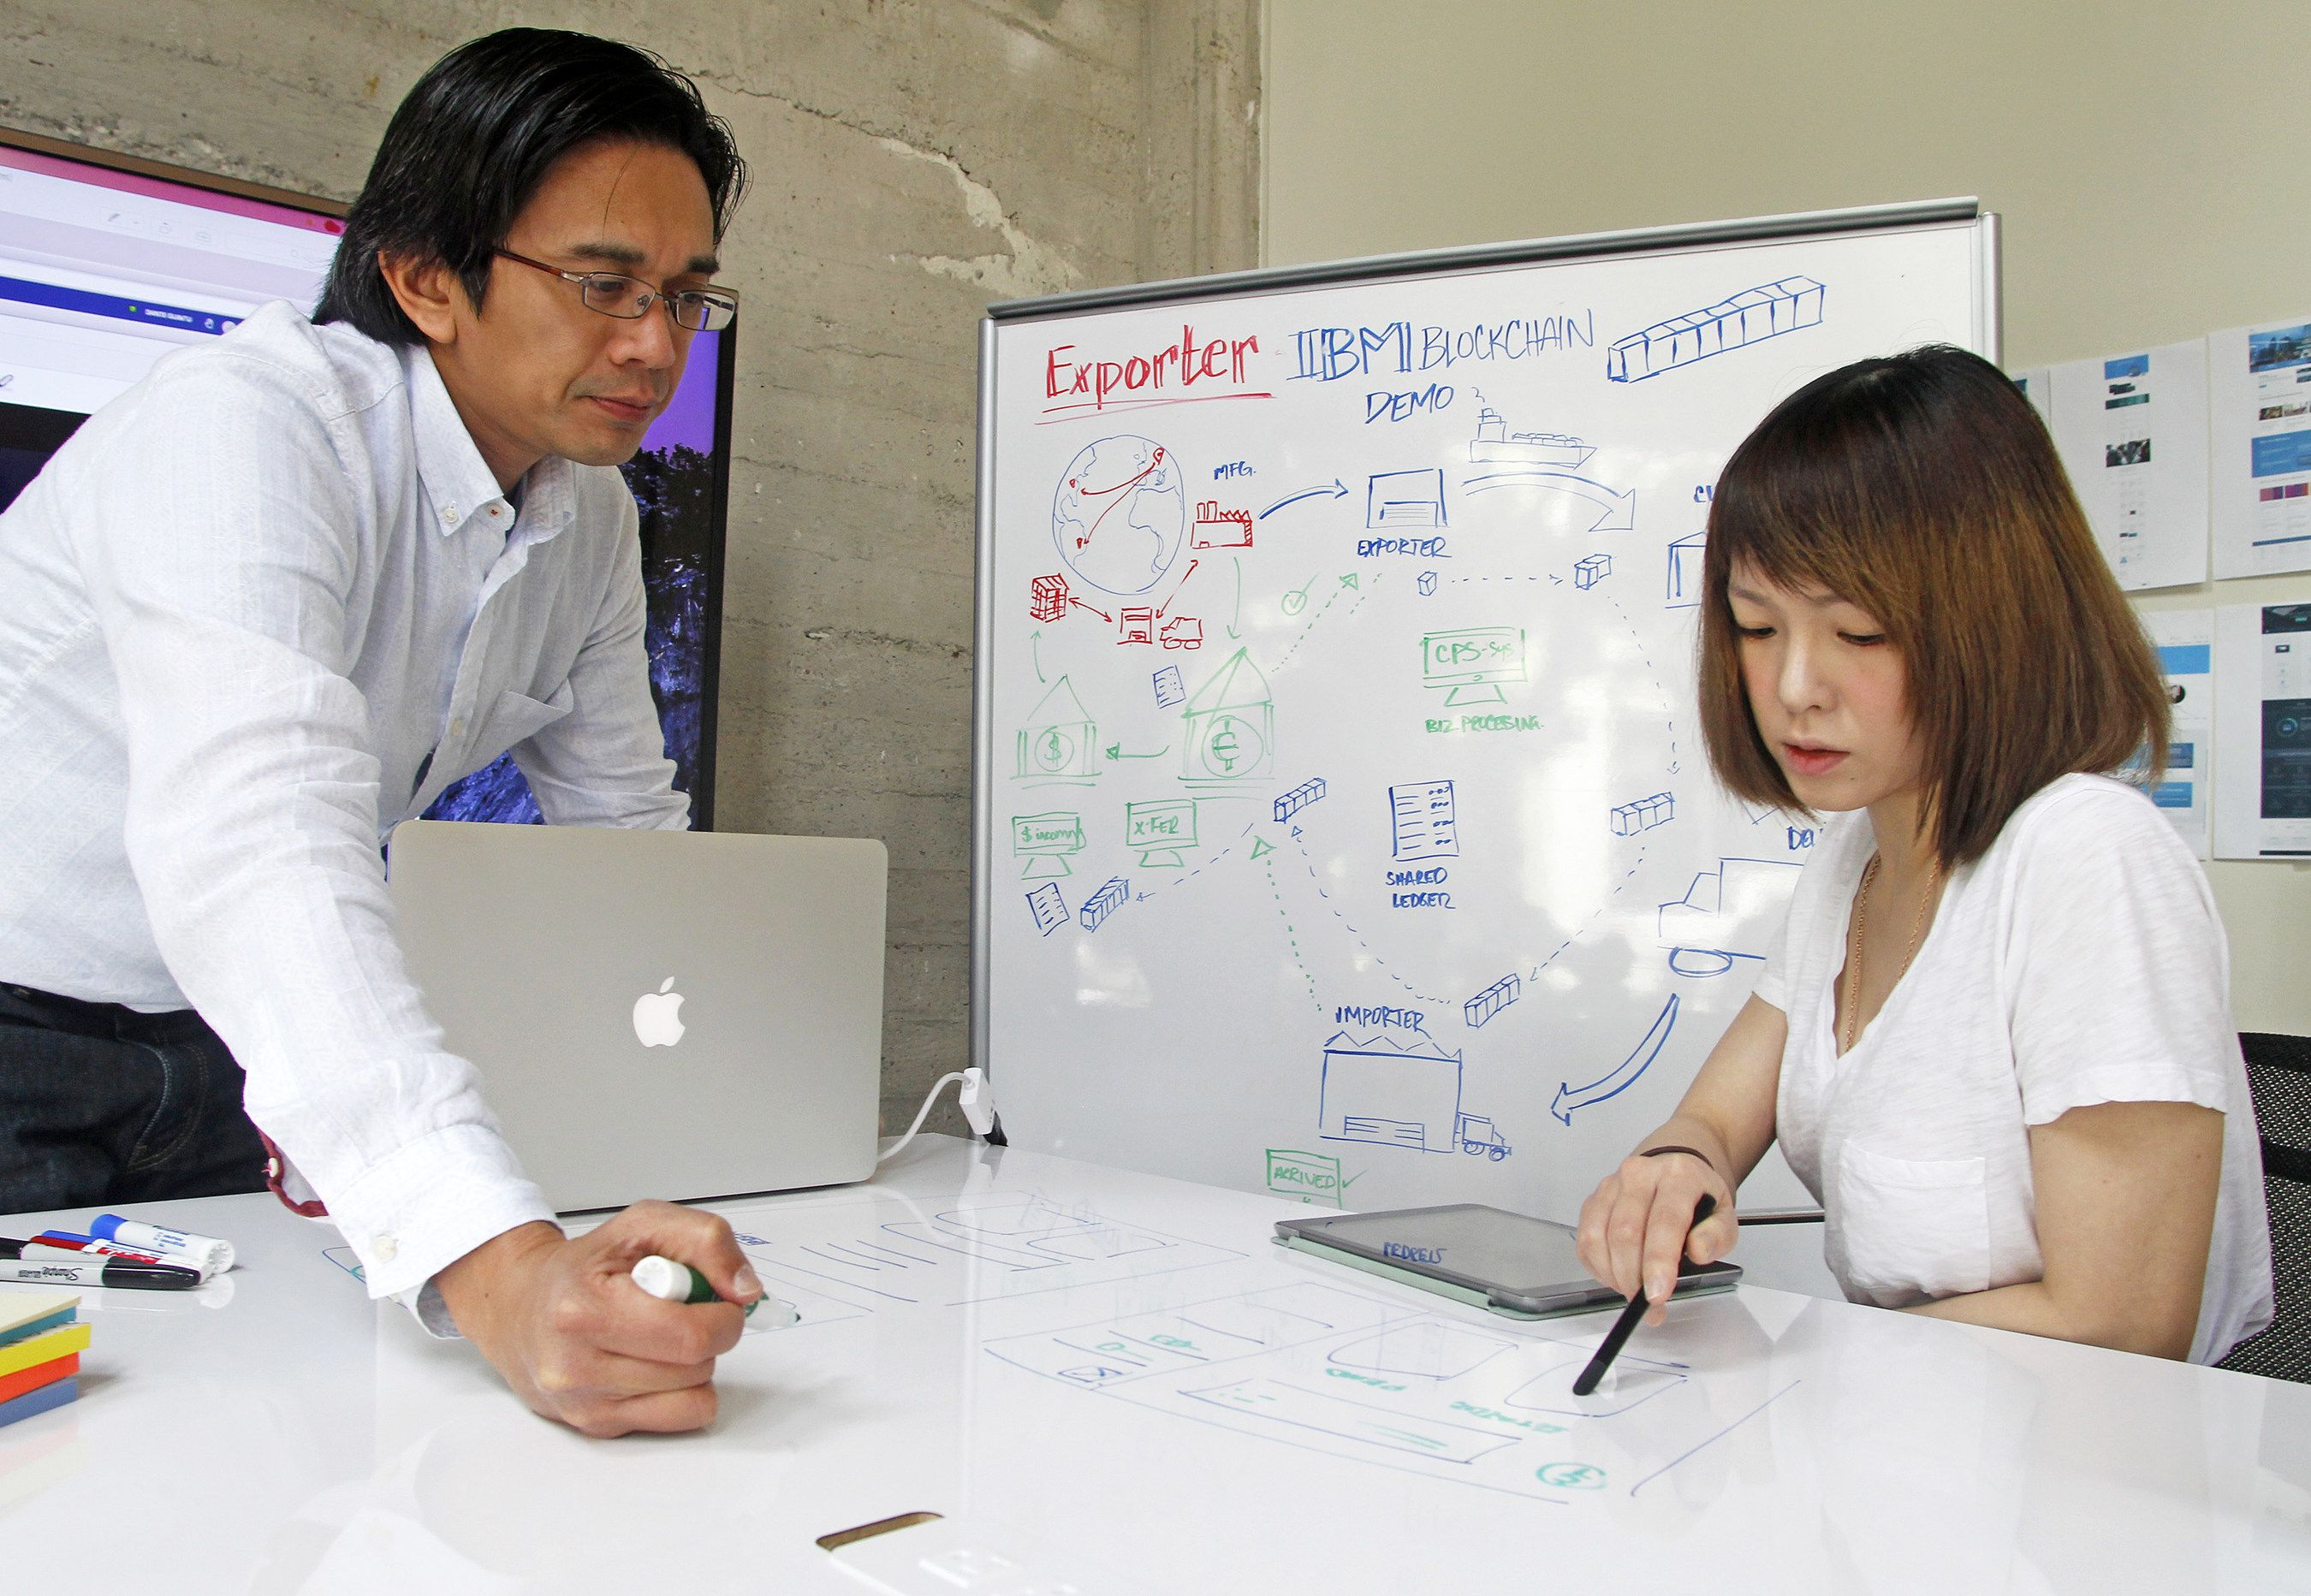 IBM Blockchain user interface designers, Dante Guintu, left and Andrea Lee, work on secure blockchain apps